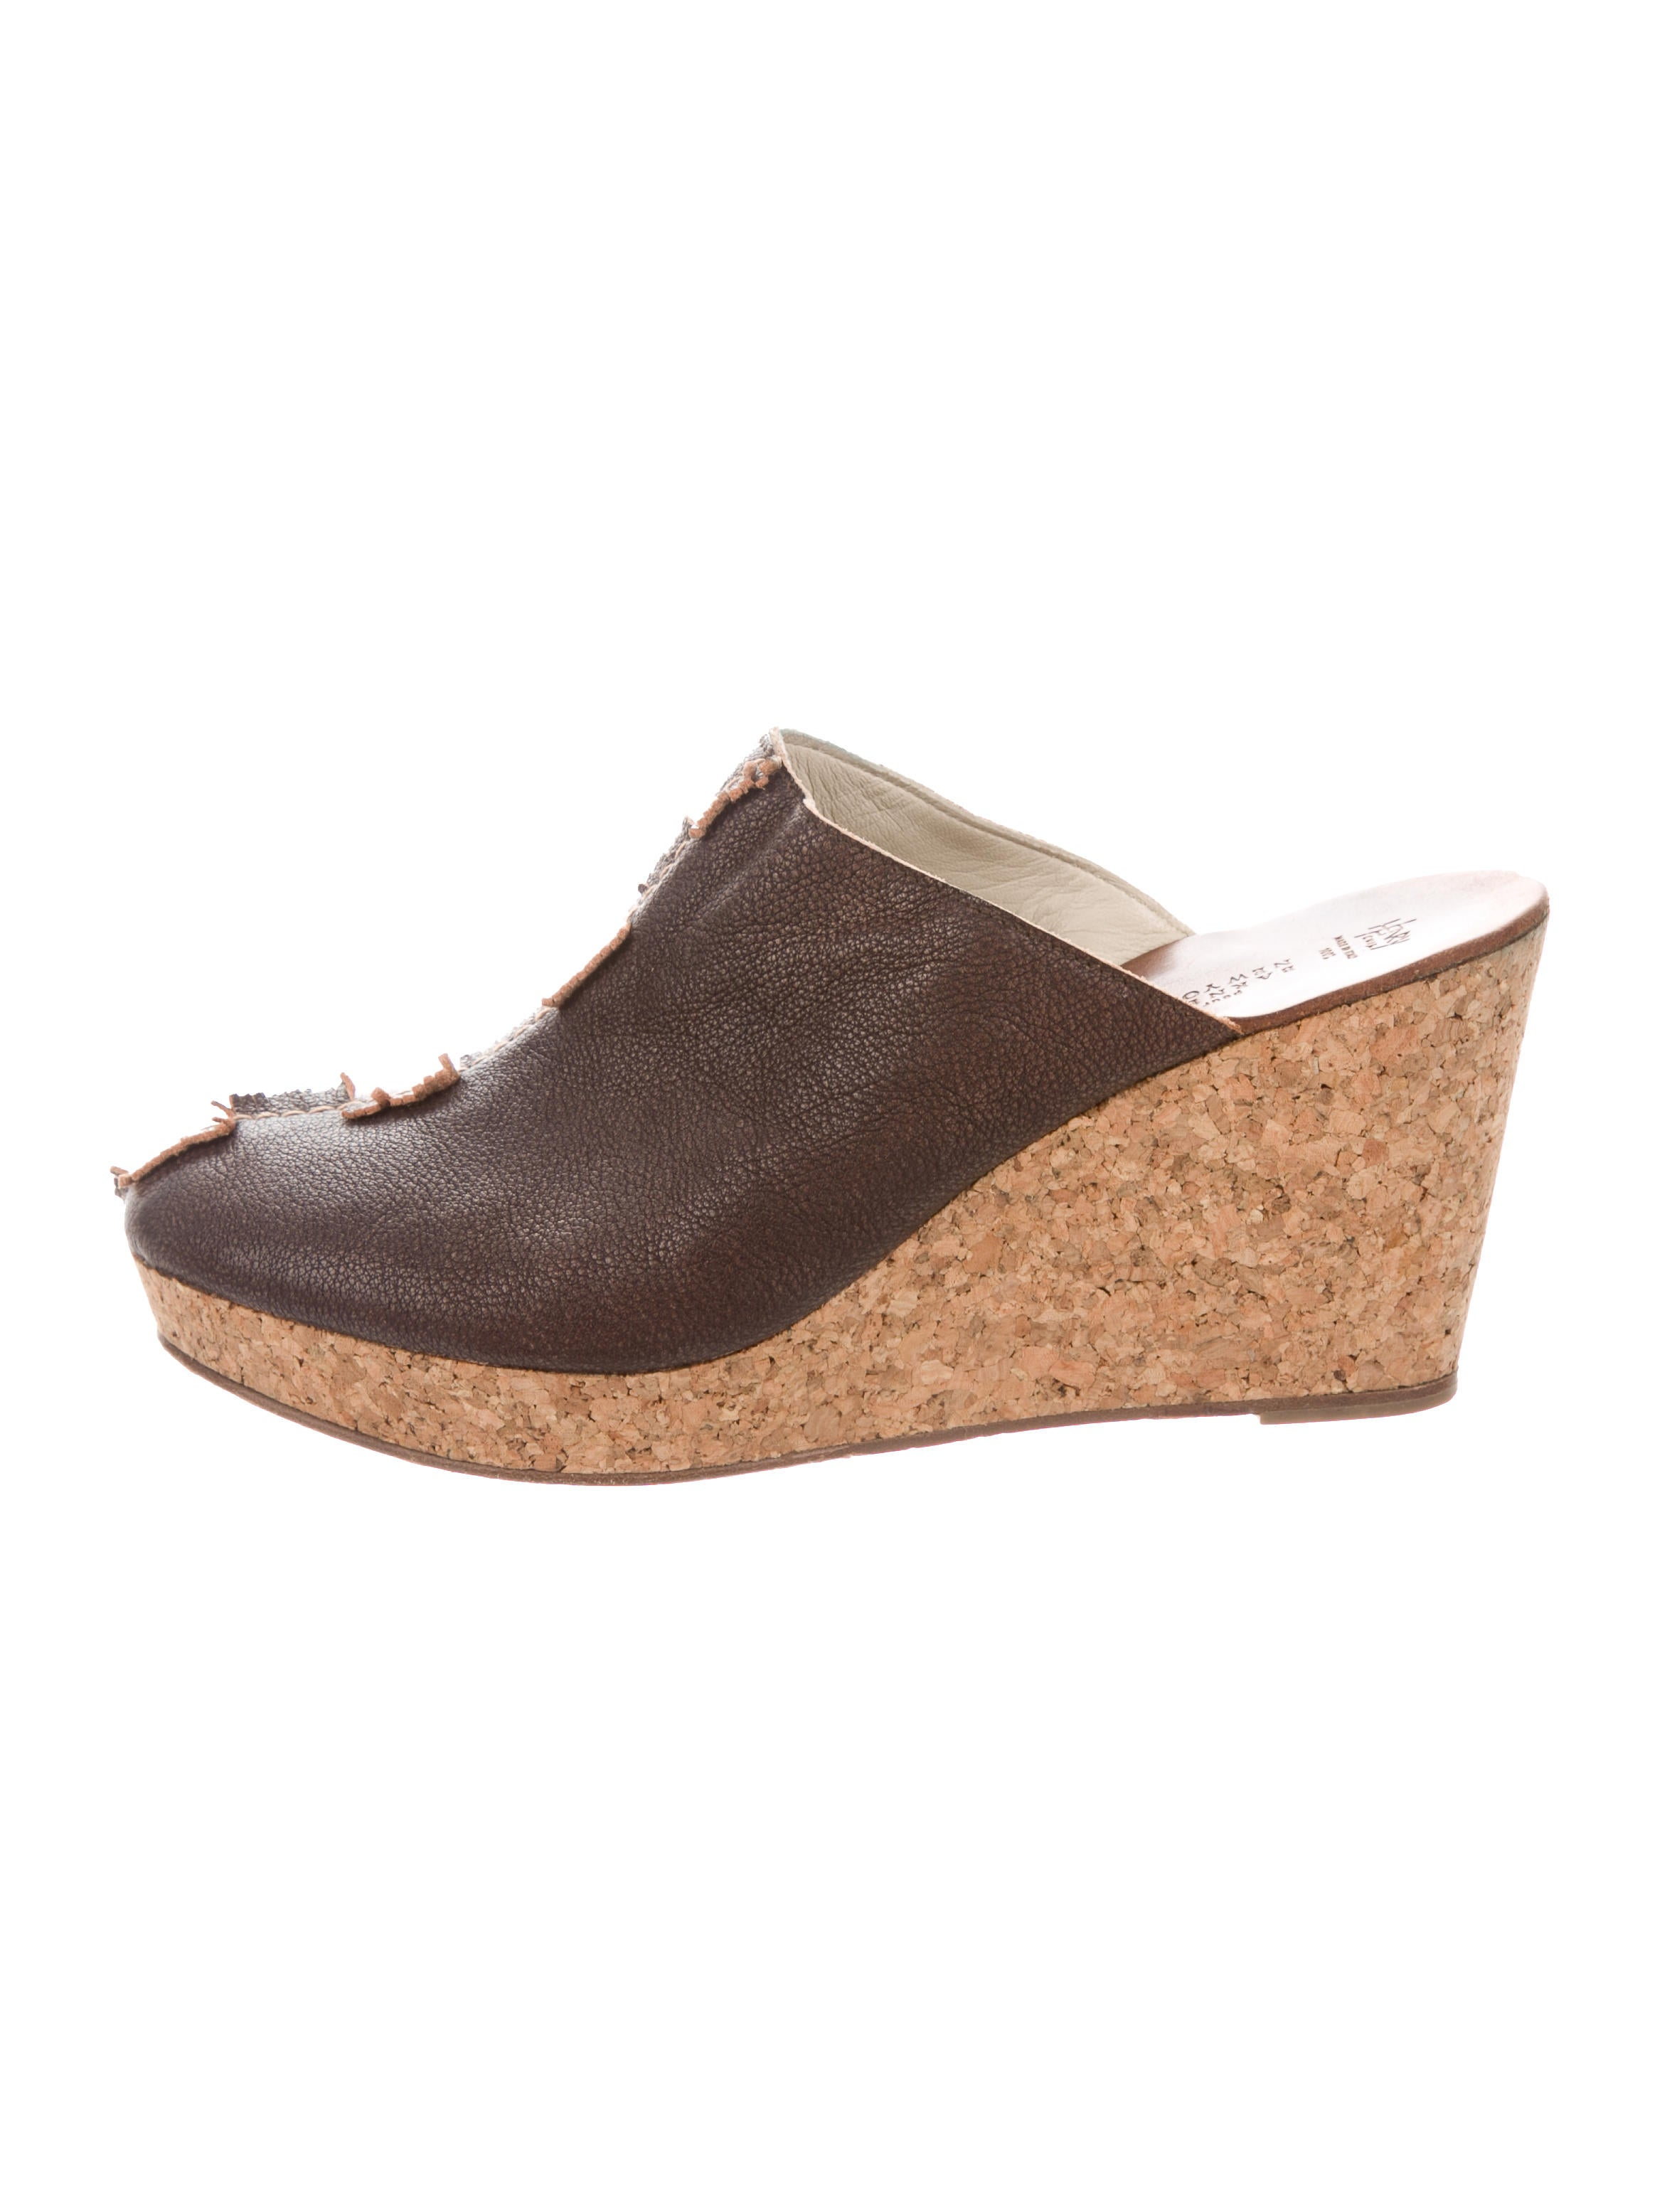 Henry Cuir Leather Wedge Mules outlet affordable fashion Style sale online cheap sale supply 3ZJOvAnMb